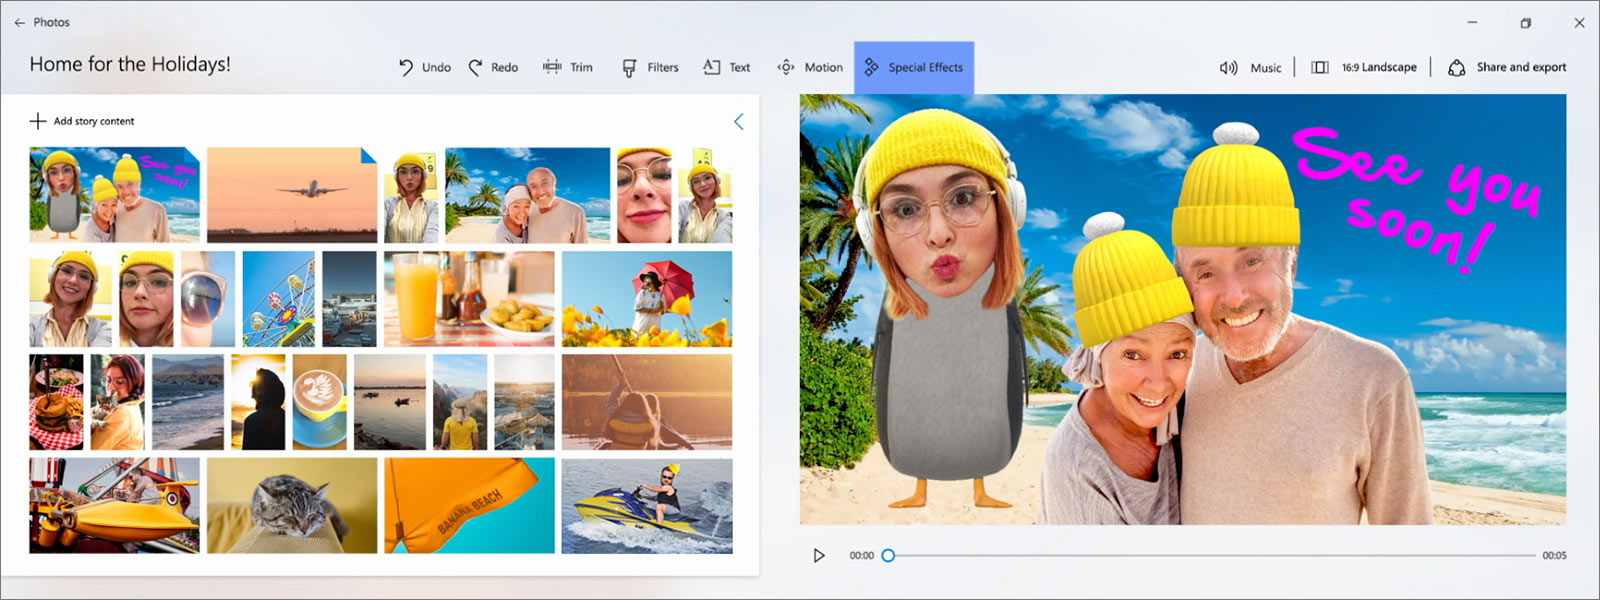 Windows 10 Photos-app